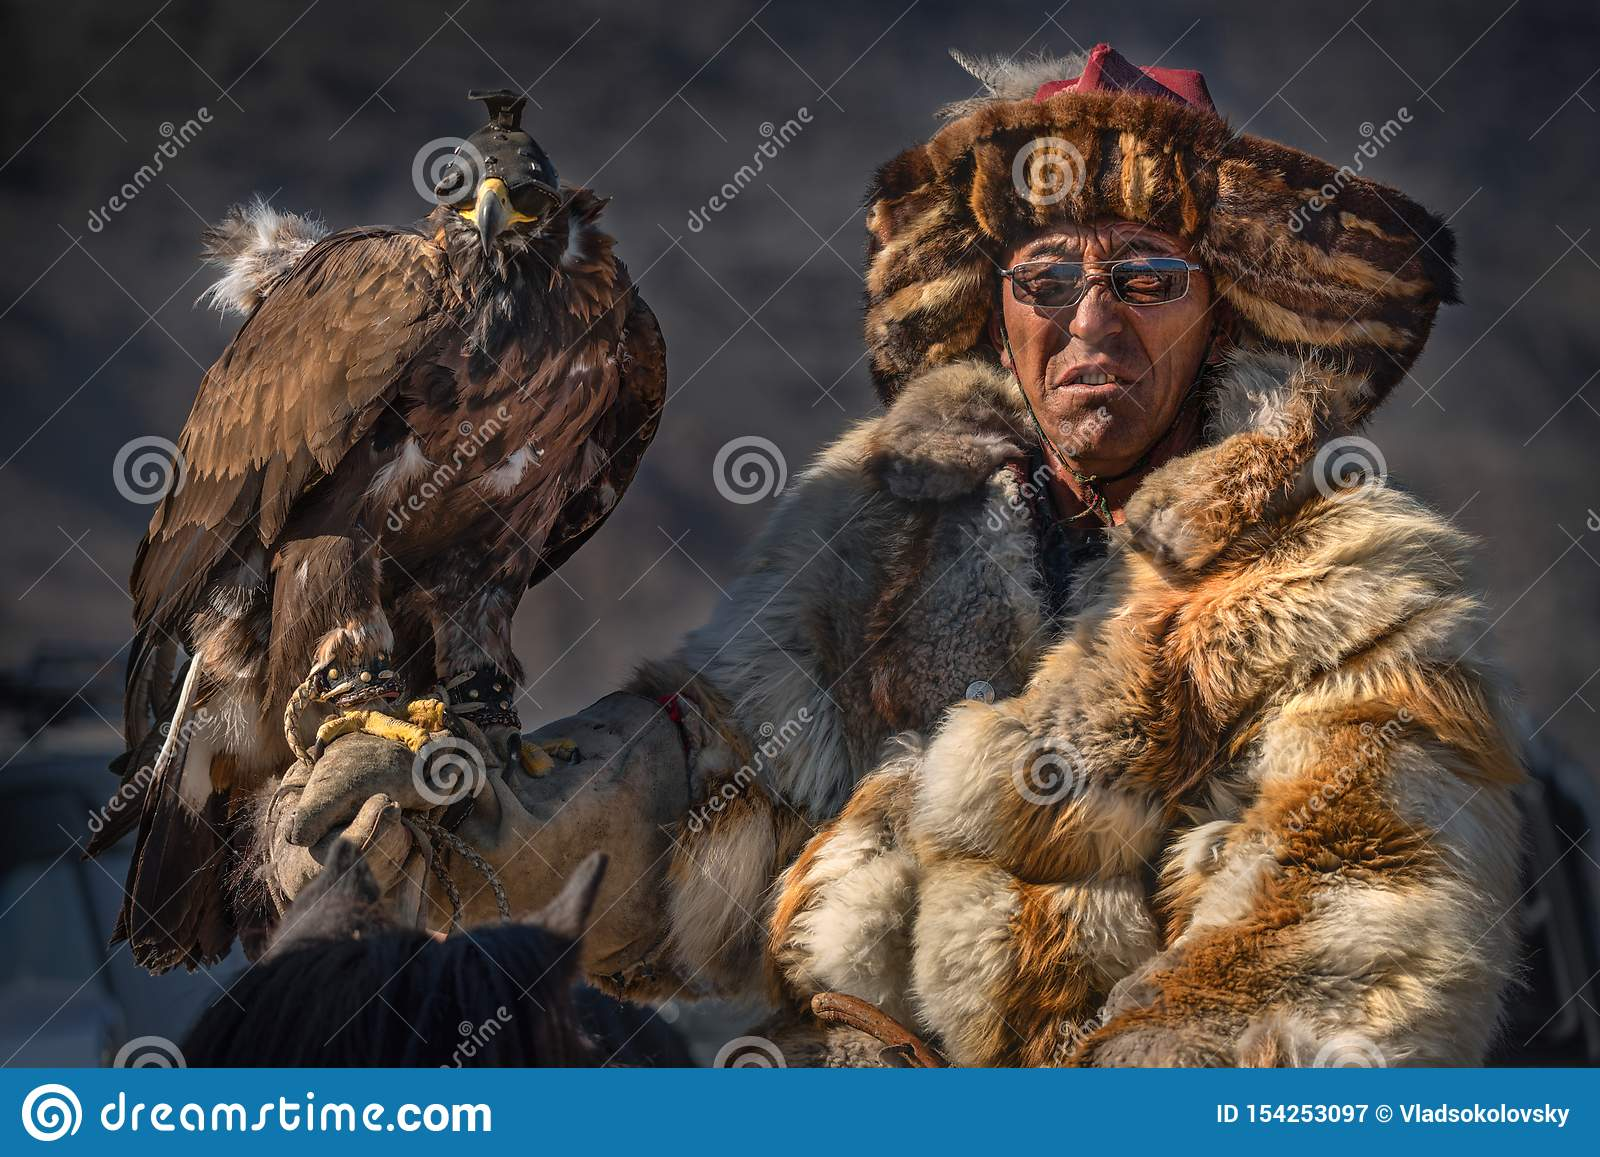 Bespectacled Experienced Mongolian Nomad In Fox Fur Coat, One Of The Participants Of Golden Eagle Festival.Man In Glasses With Gol